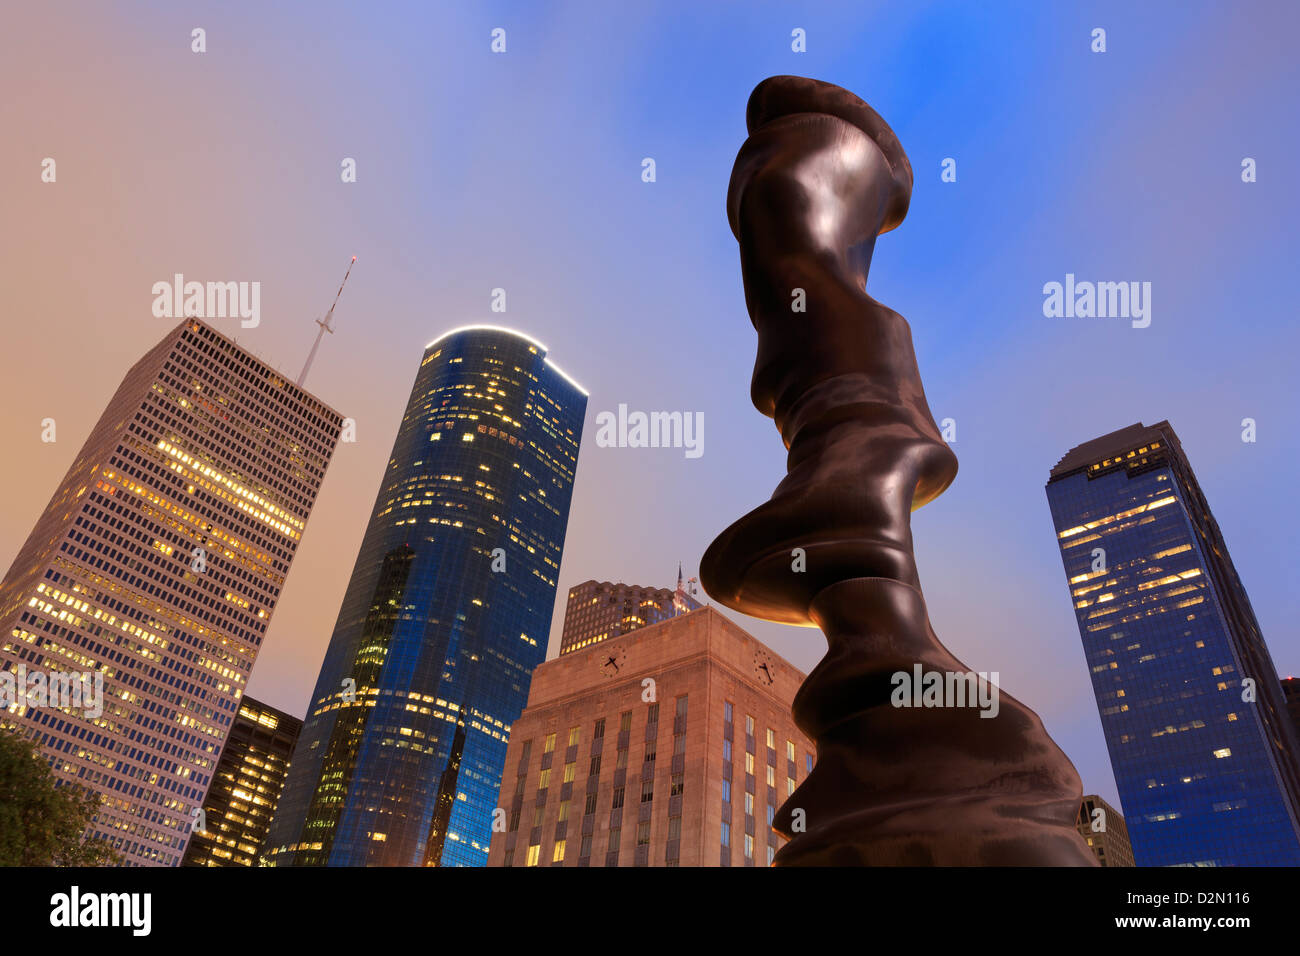 Dans l'esprit sculpture de Tony Cragg, Hobby Center for the Performing Arts, Houston, Texas, États-Unis Photo Stock